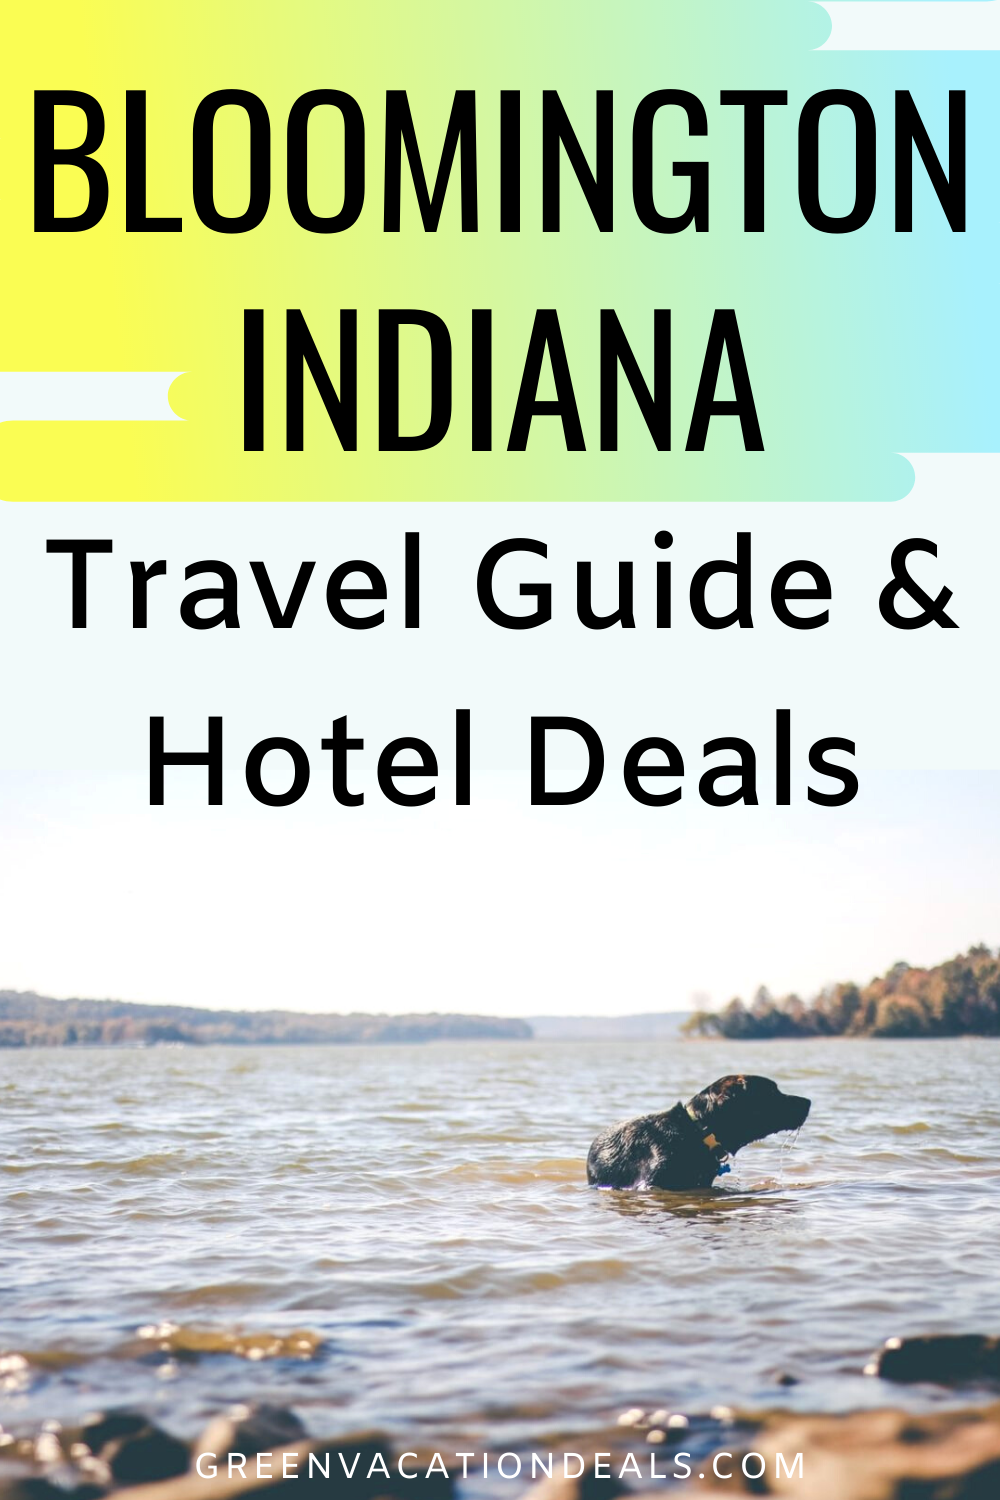 Bloomington, Indiana travel guide. Learn about activities (kayaking, hiking, fishing, boating, biking, etc), how to save money camping, and how to get a discount of up to 75% on Bloomington hotels. #Bloomington #Indiana #HotelDeals #HotelSale #MidwestTravel #IndianaTravel #Hoosiers #birdwatching #craftbeer #beer #biking #hiking #HorsebackRiding #RockClimbing #LakeMonroe